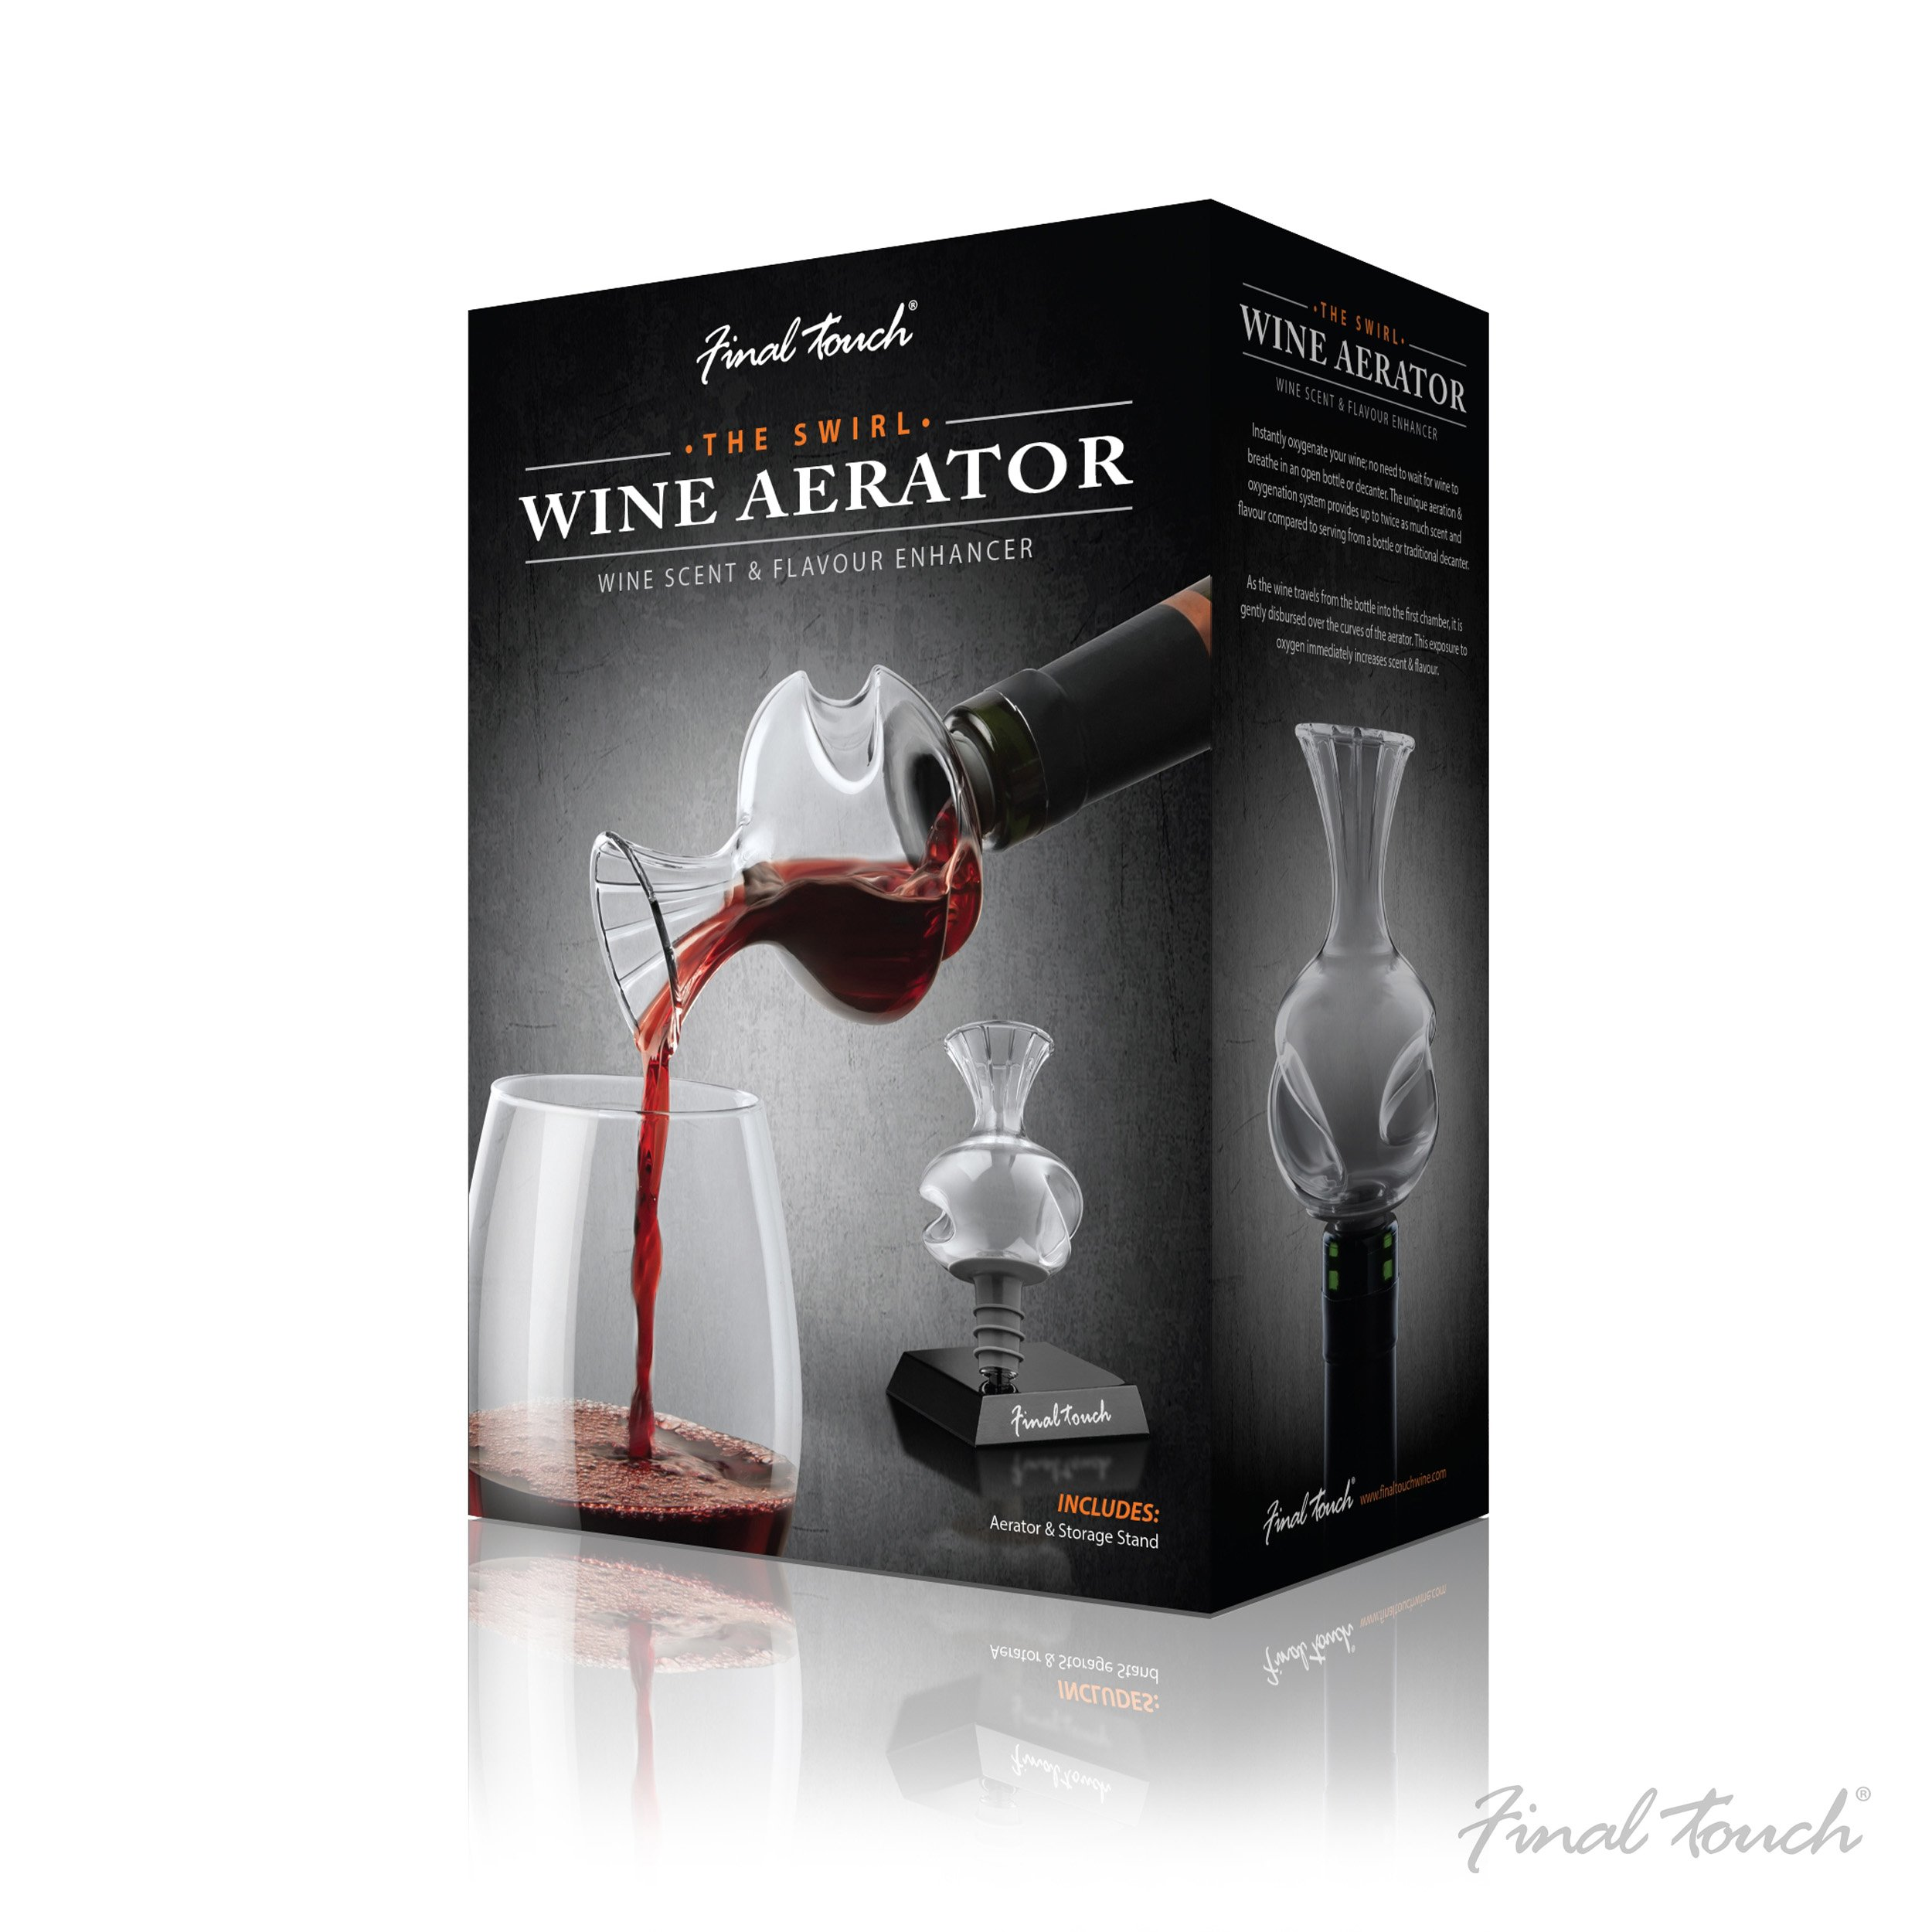 The Swirl Glass Wine Aerator with Stand - On The Bottle Wine Scent & Flavor Enhancer by Final Touch (Image #3)